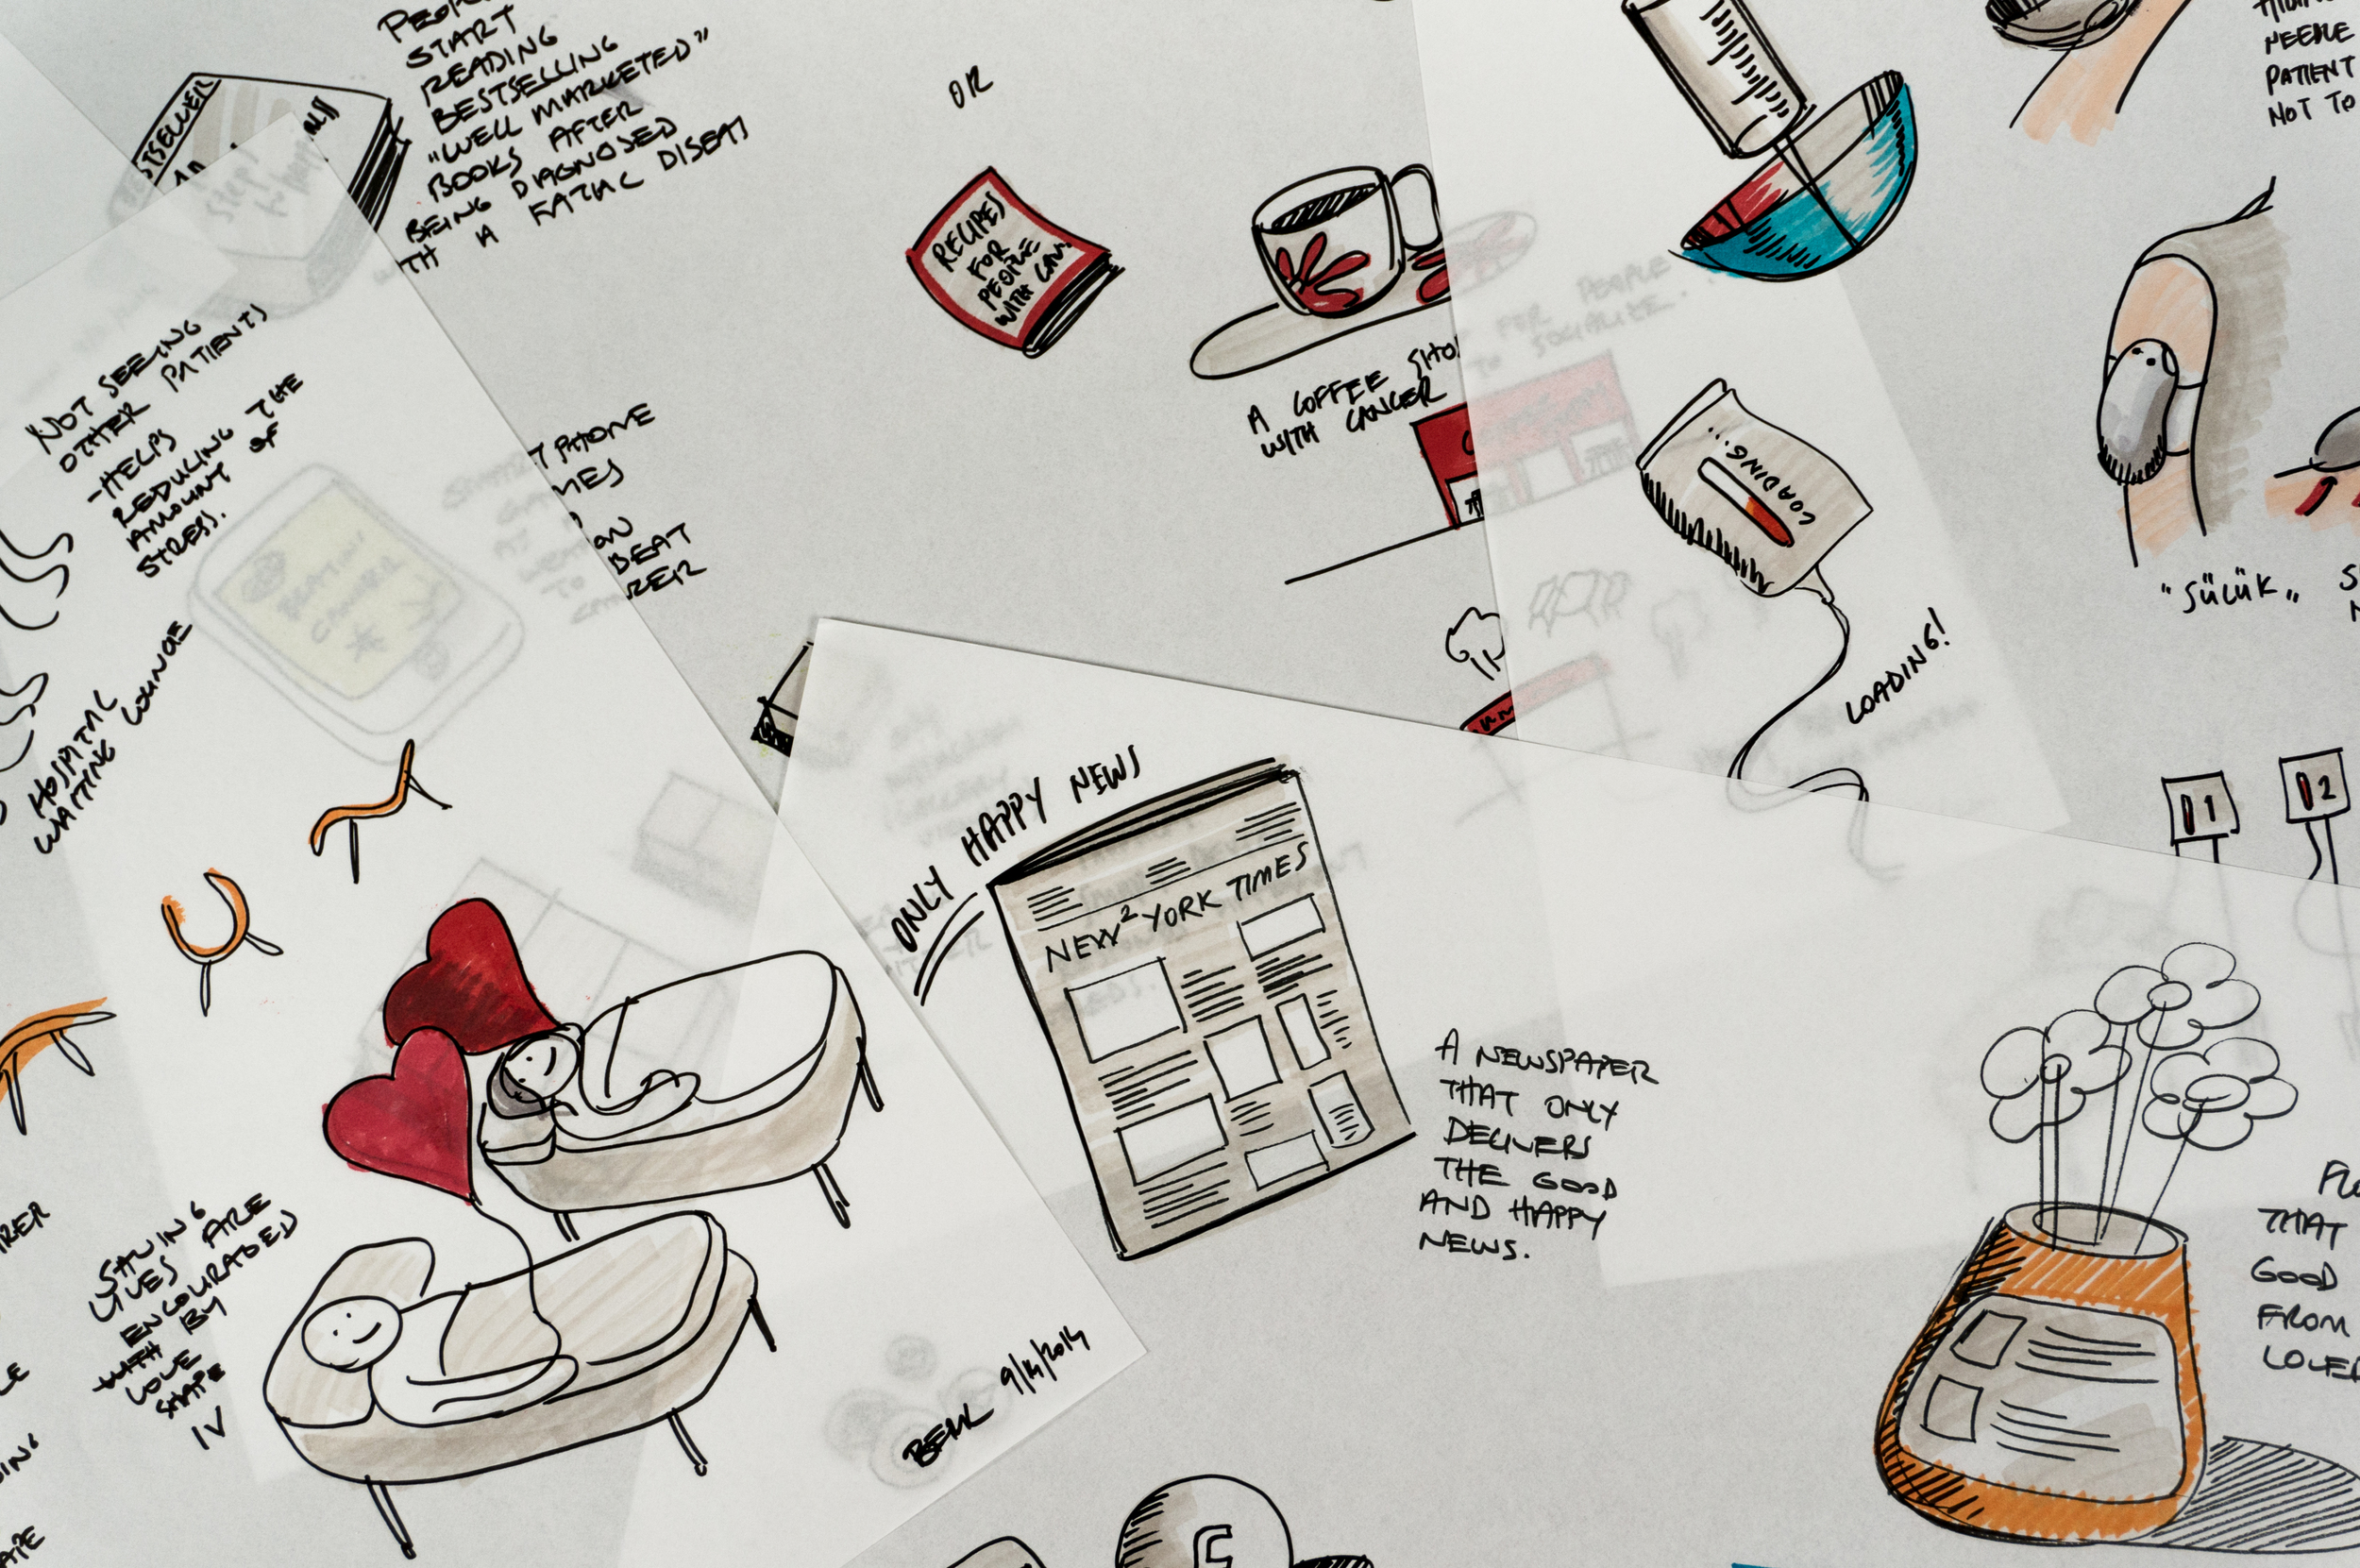 speculative_object_sketches-4.jpg